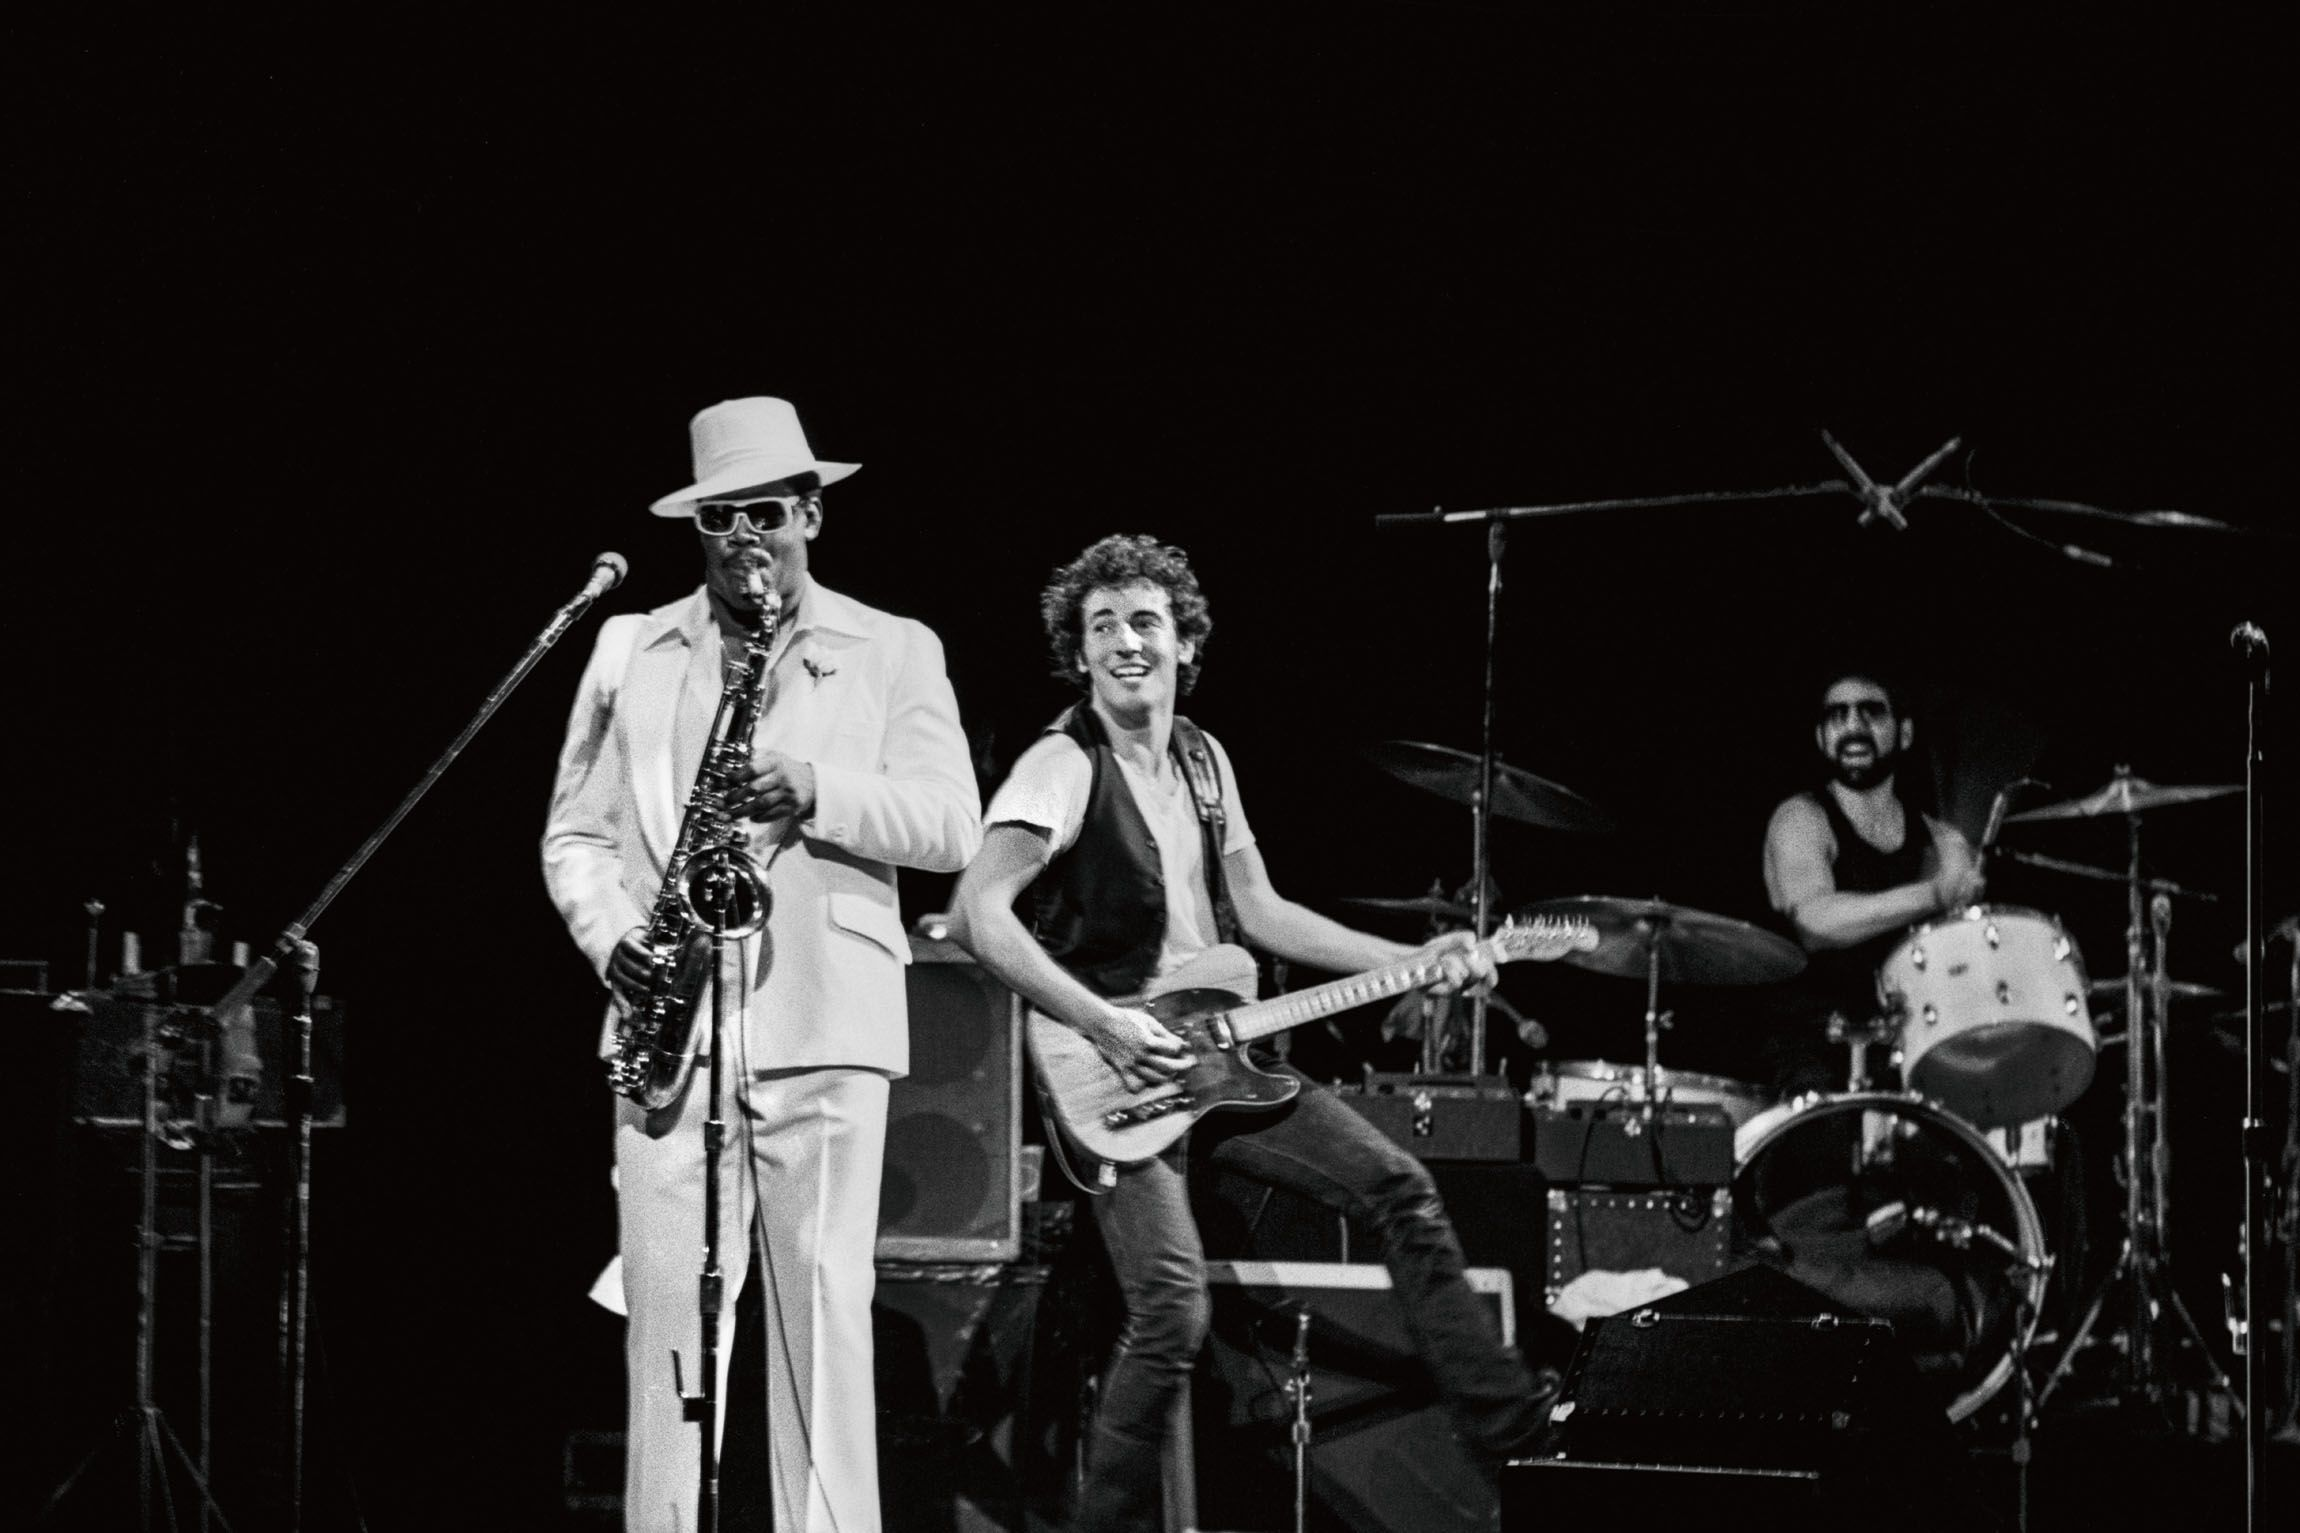 Bruce Springsteen performs at the Oakland Paramount in 1976.